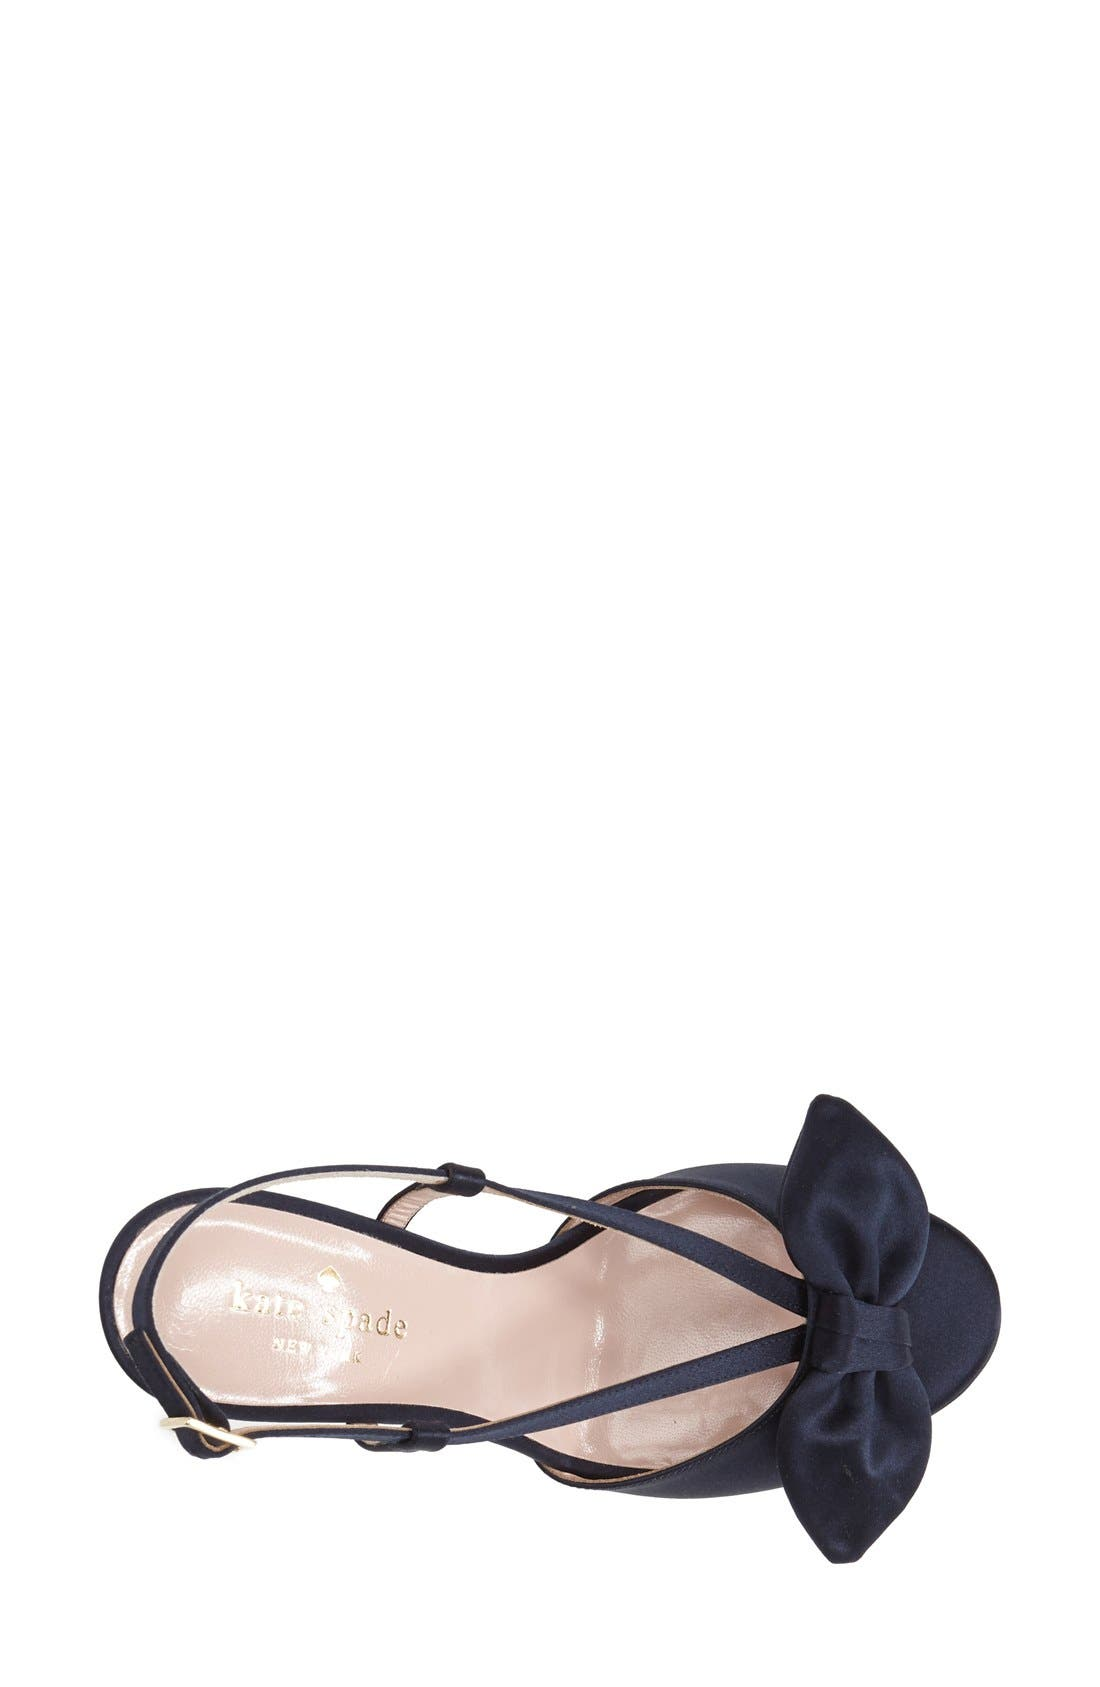 Alternate Image 3  - kate spade new york 'rezza' platform sandal (Women)